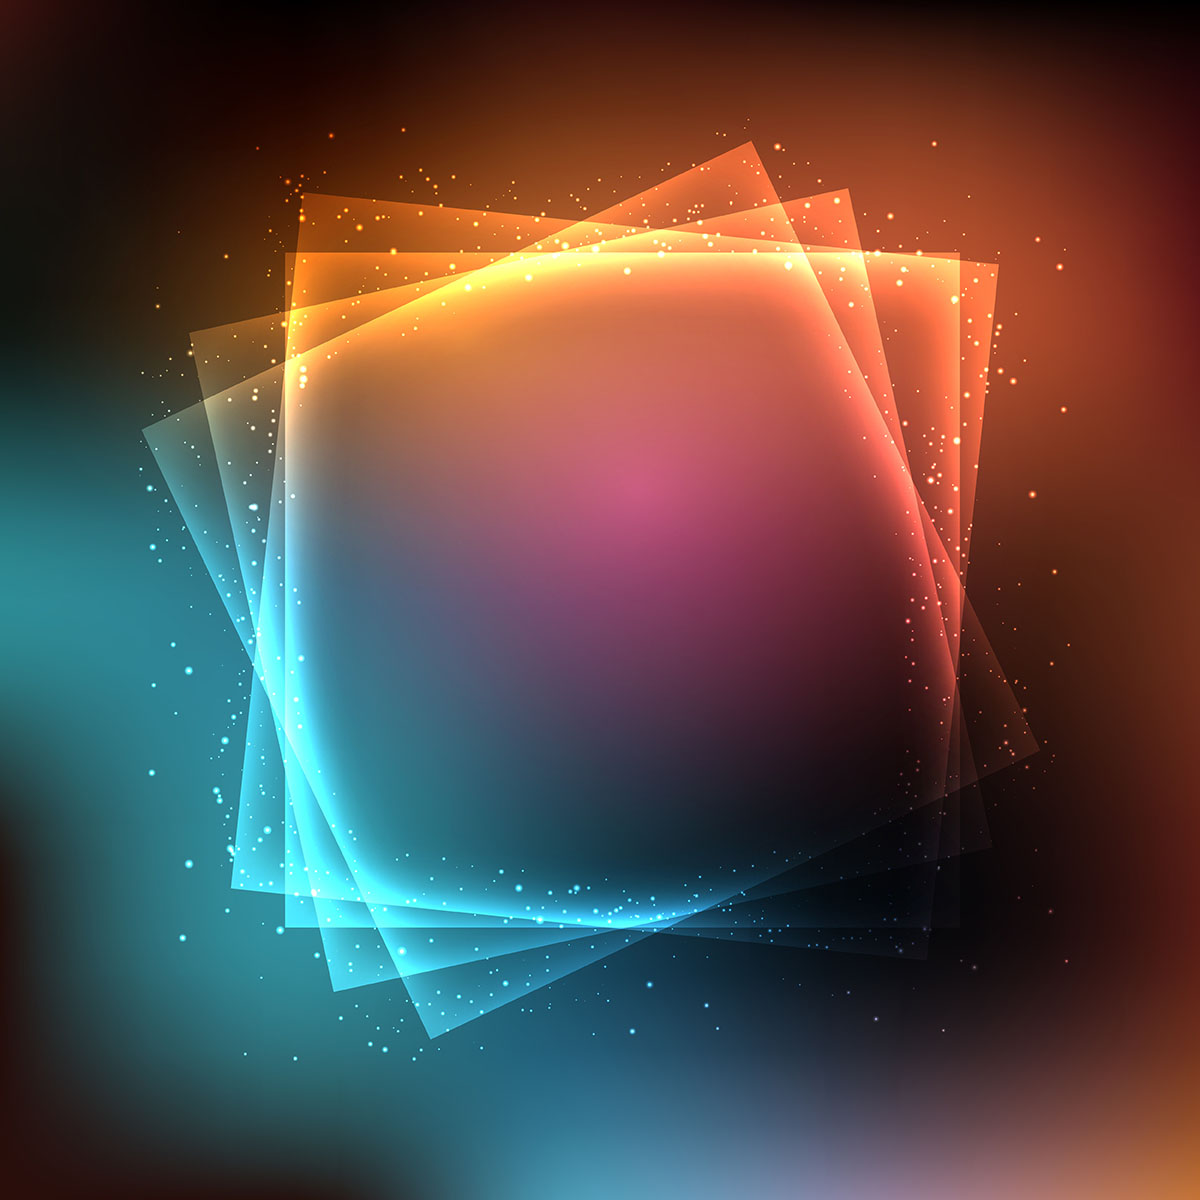 Abstract lights background - Download Free Vectors ...